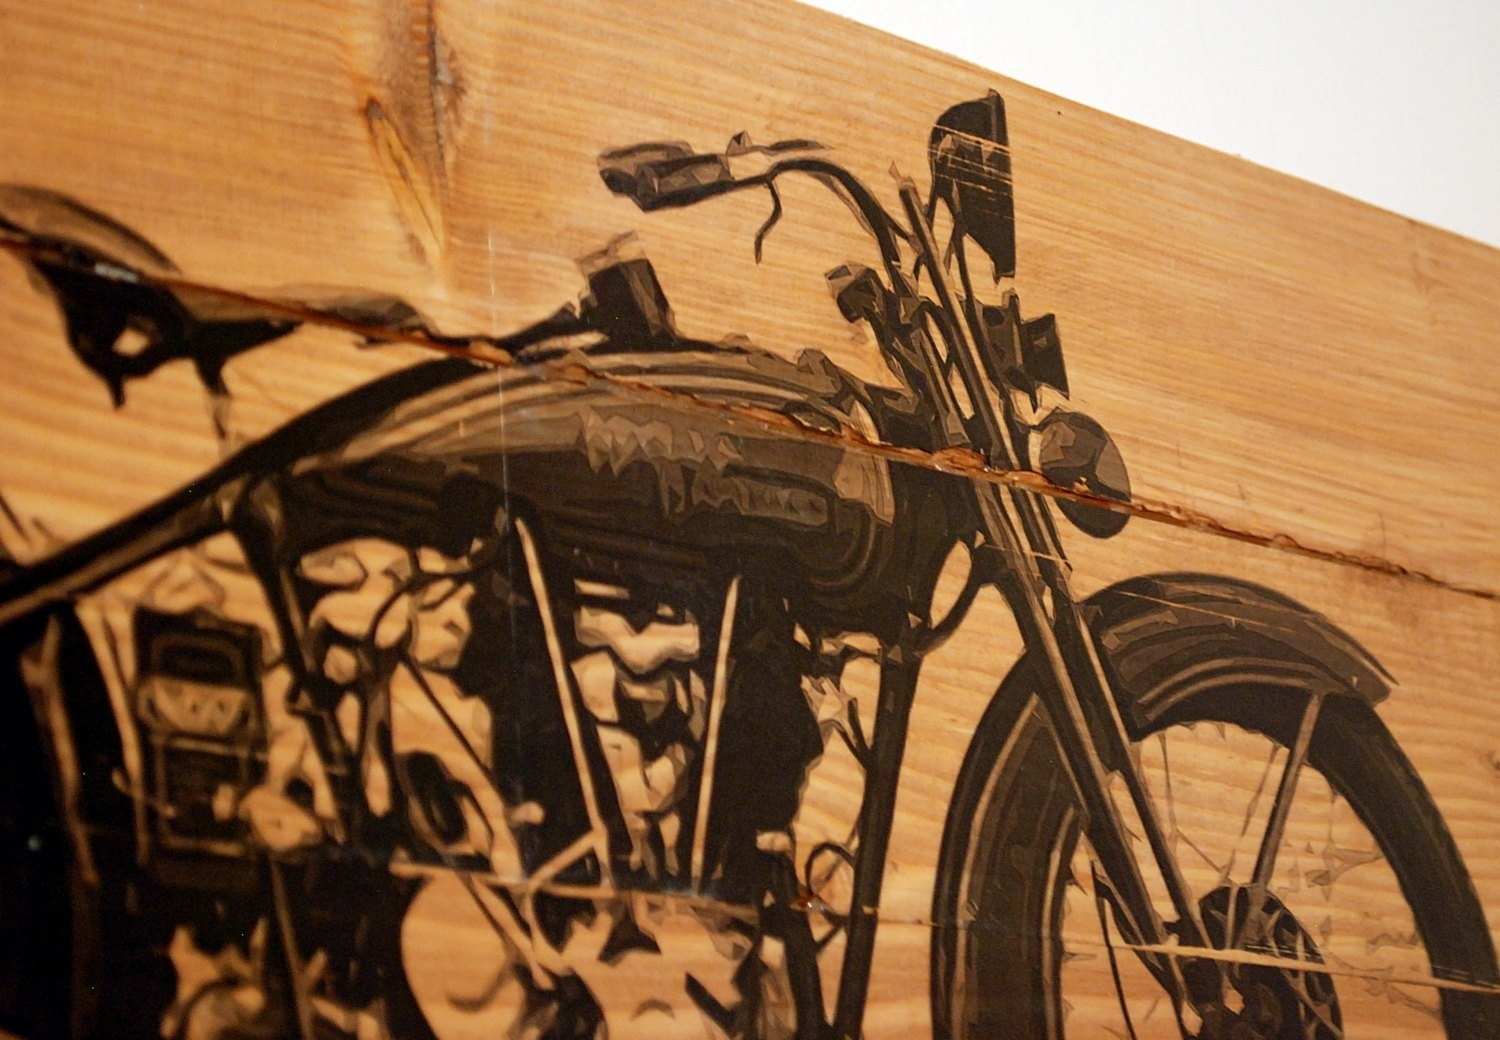 Large Vintage 1928 Harley Davidson Motorcycle Wall Art On, Harley for Most Up-to-Date Harley Davidson Wall Art